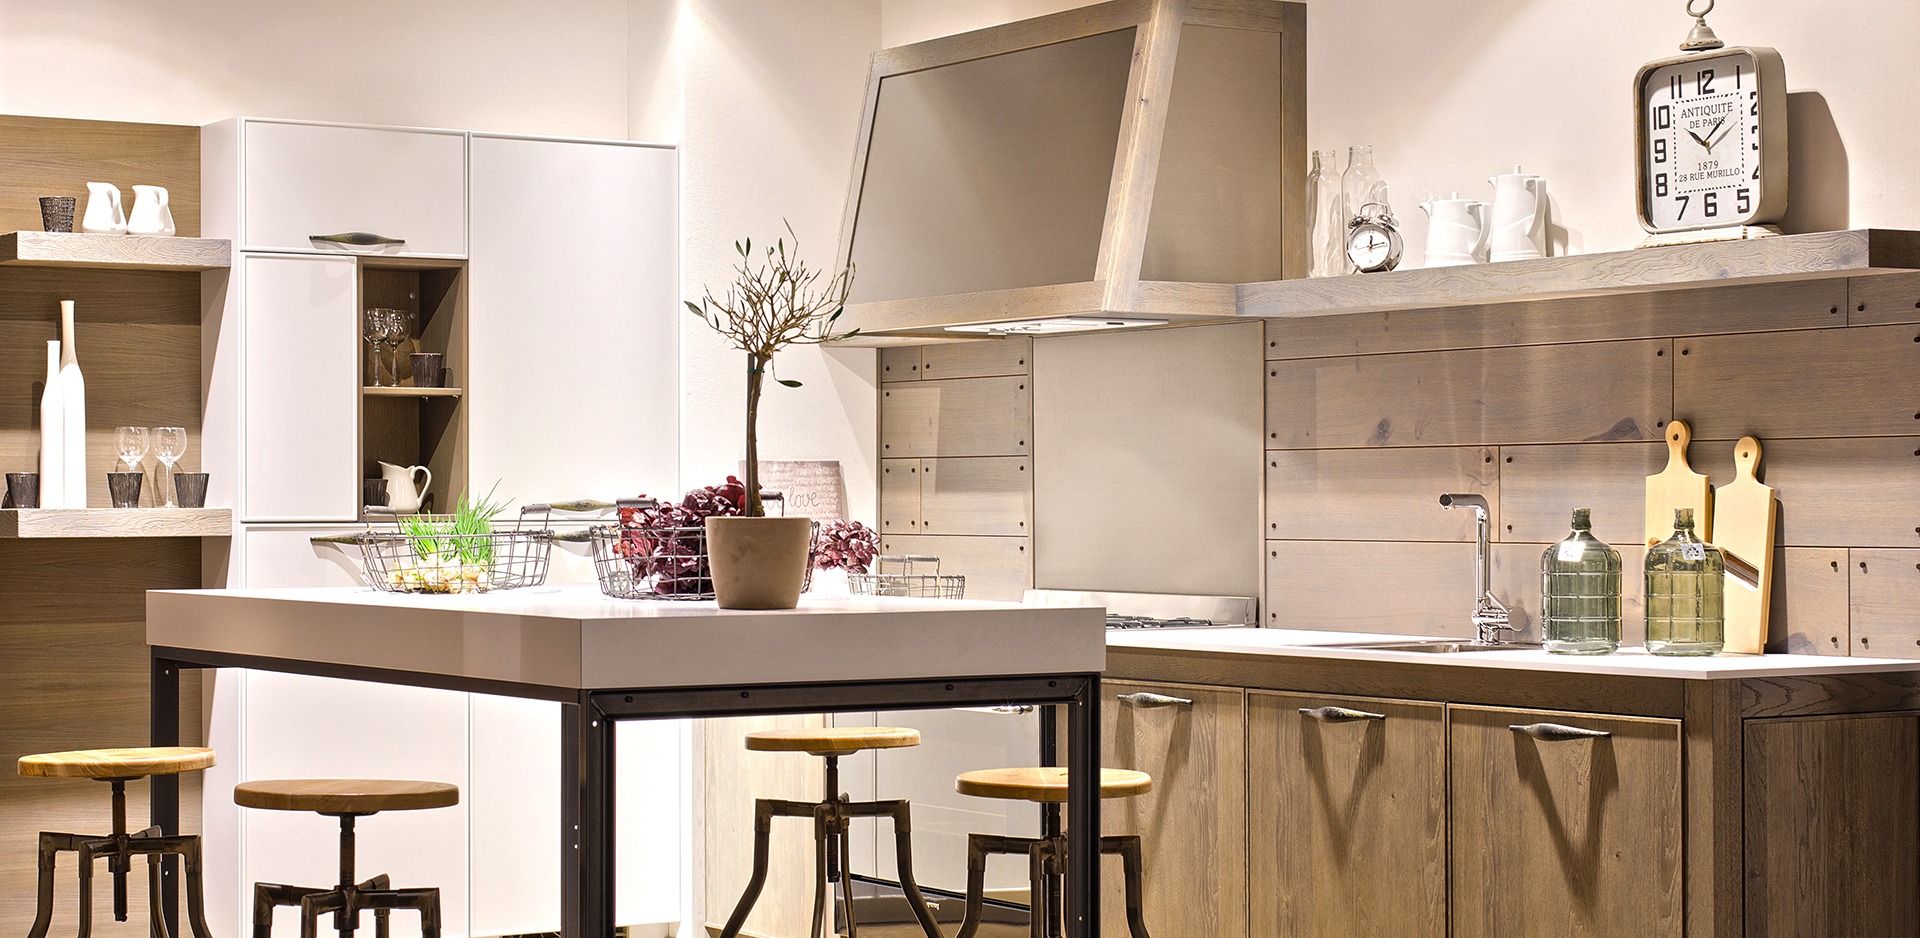 Premium European Kitchens Bauformat